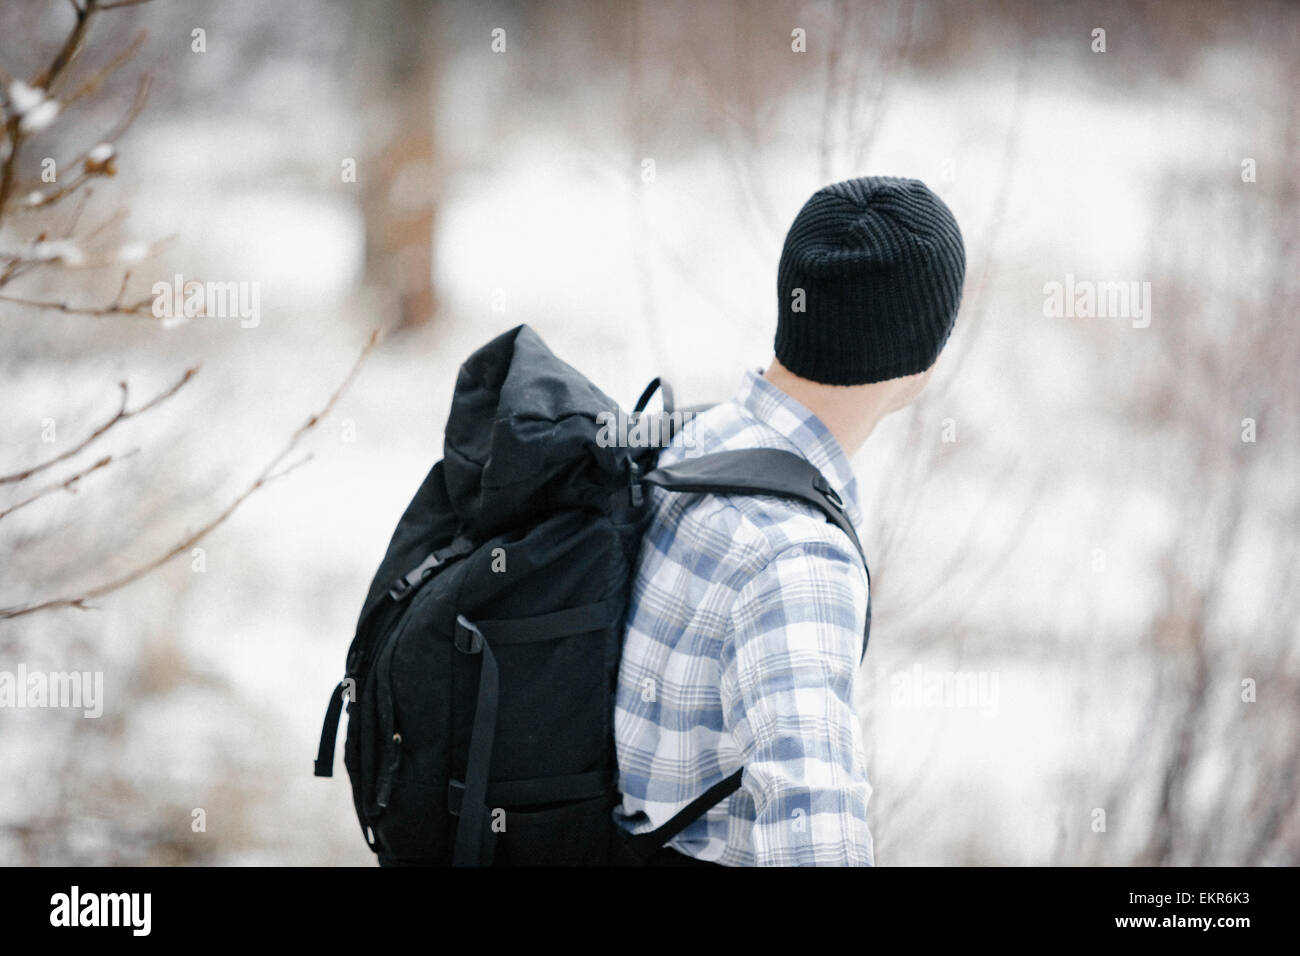 A hiker in the mountains with a rucksack and a woolly hat. - Stock Image